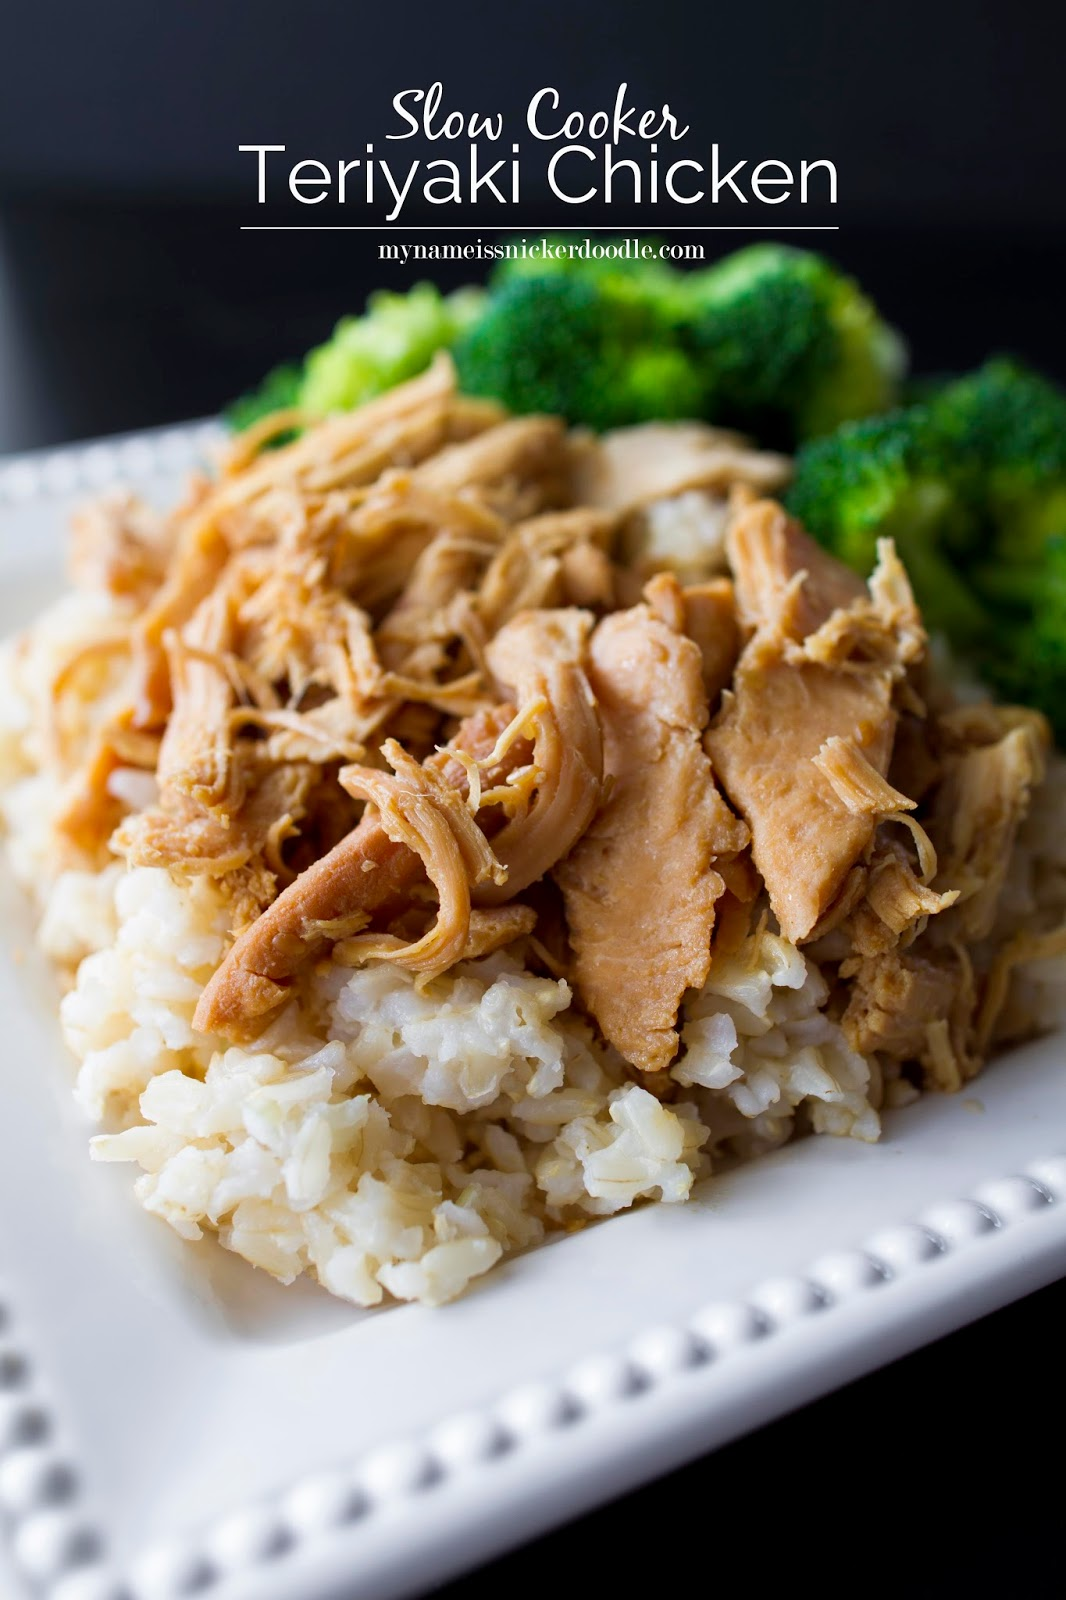 With only 2 ingredients you can make this Teriyaki Chicken easy peasy!  And to make it even easier, it's cooked in the slow cooker.  |  My Name Is Snickerdoodle